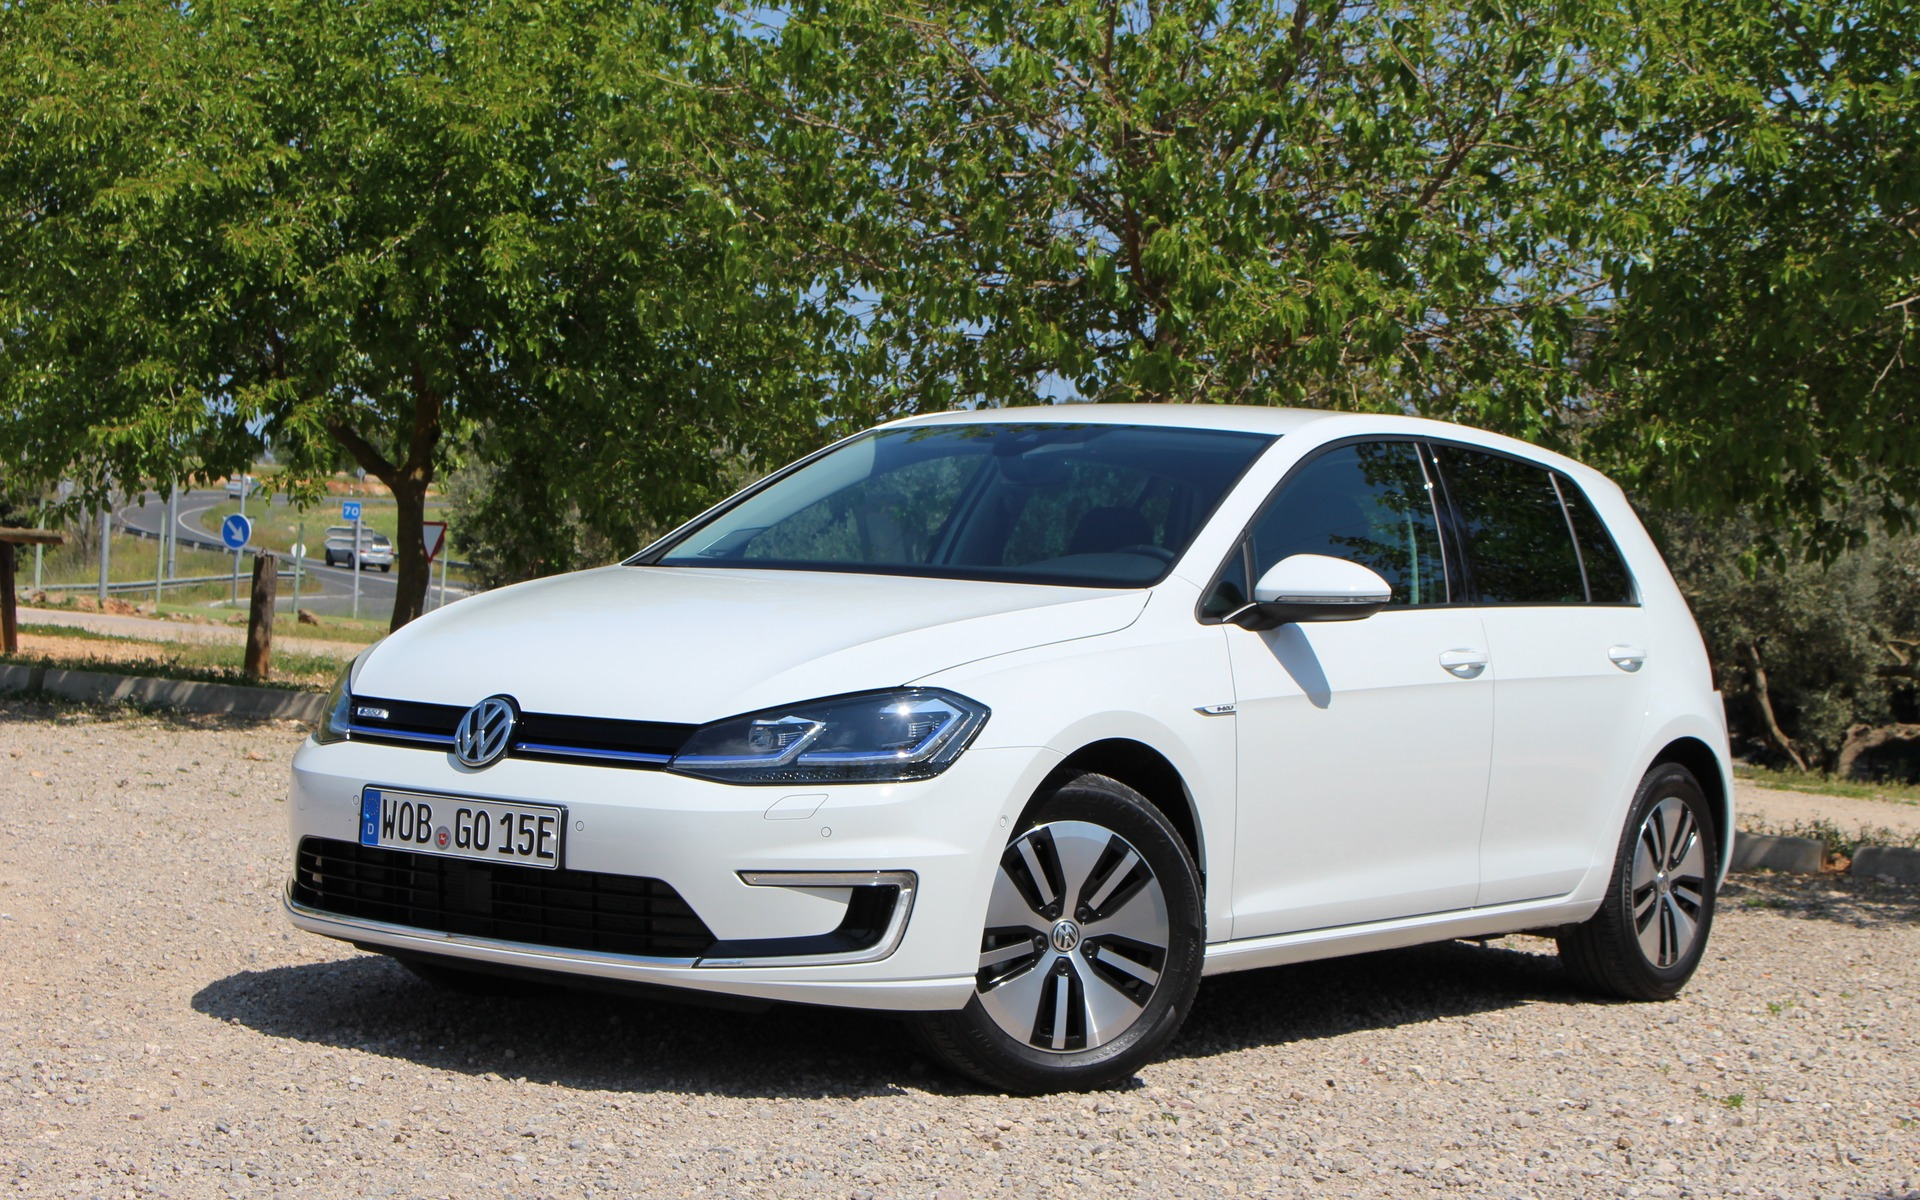 2017 Volkswagen e-Golf: Watch Out, Bolt - The Car Guide